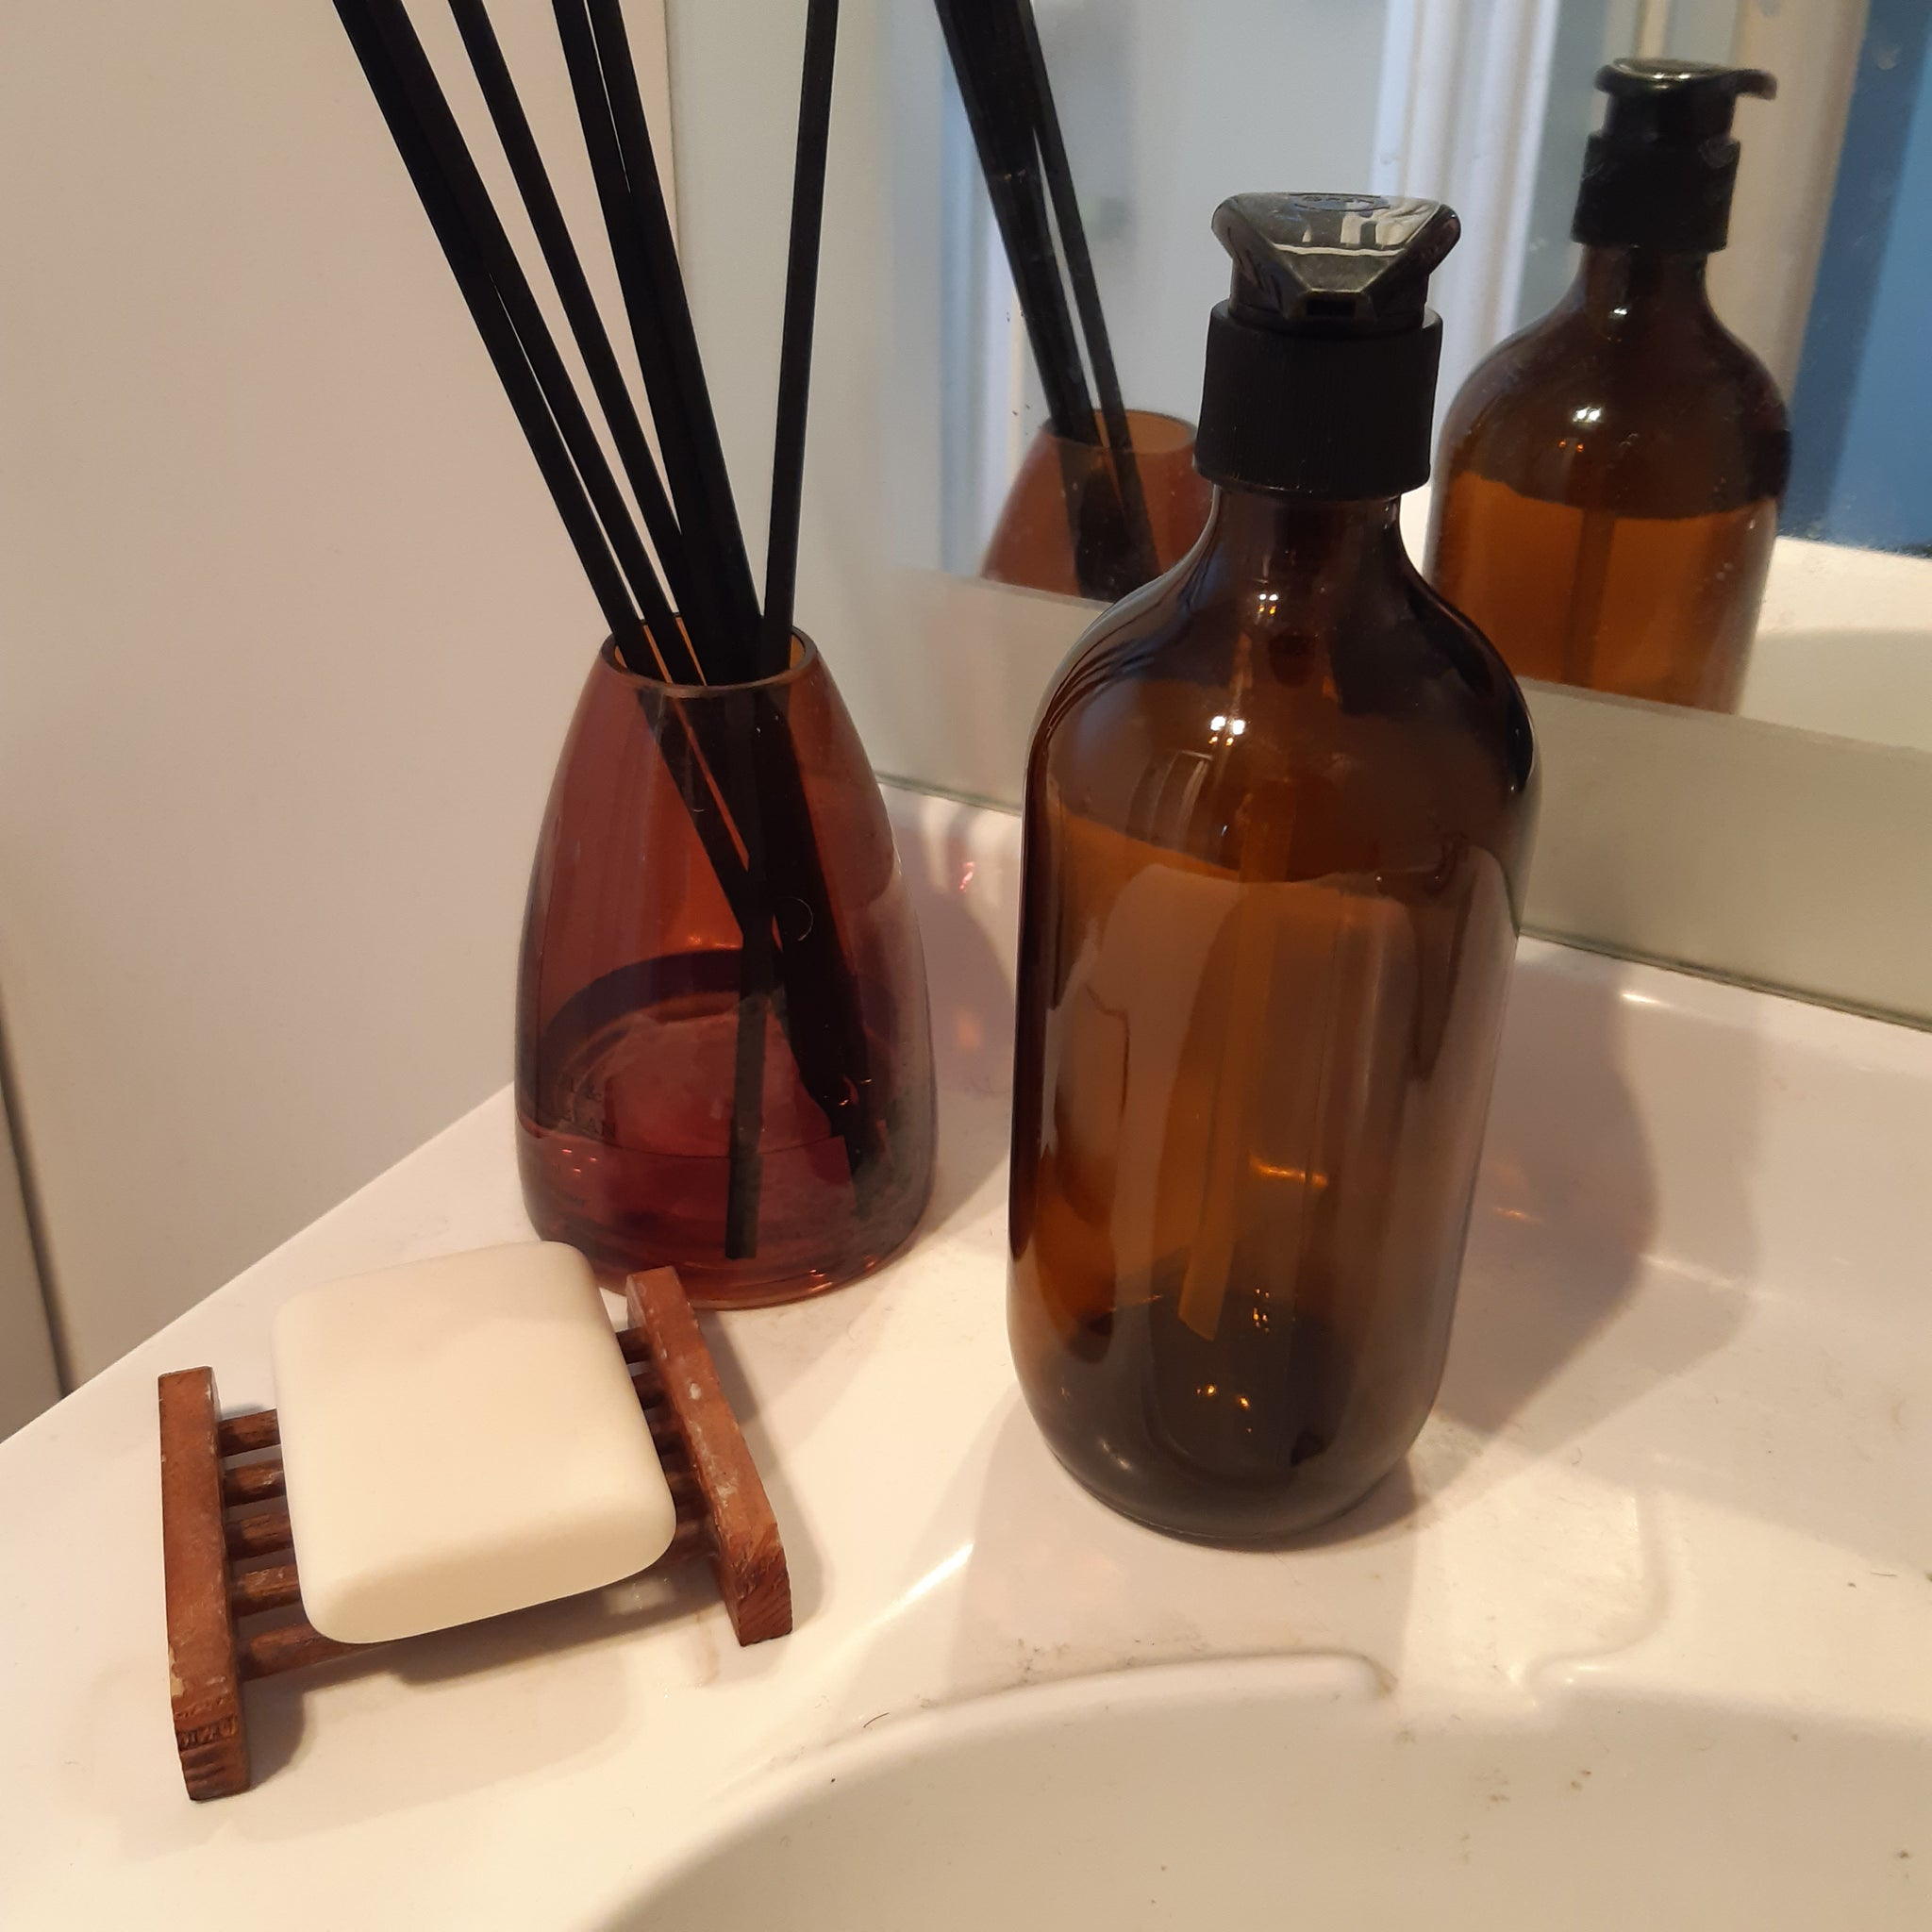 Soap/Shampoo Amber Glass Bottle - Zest - for life